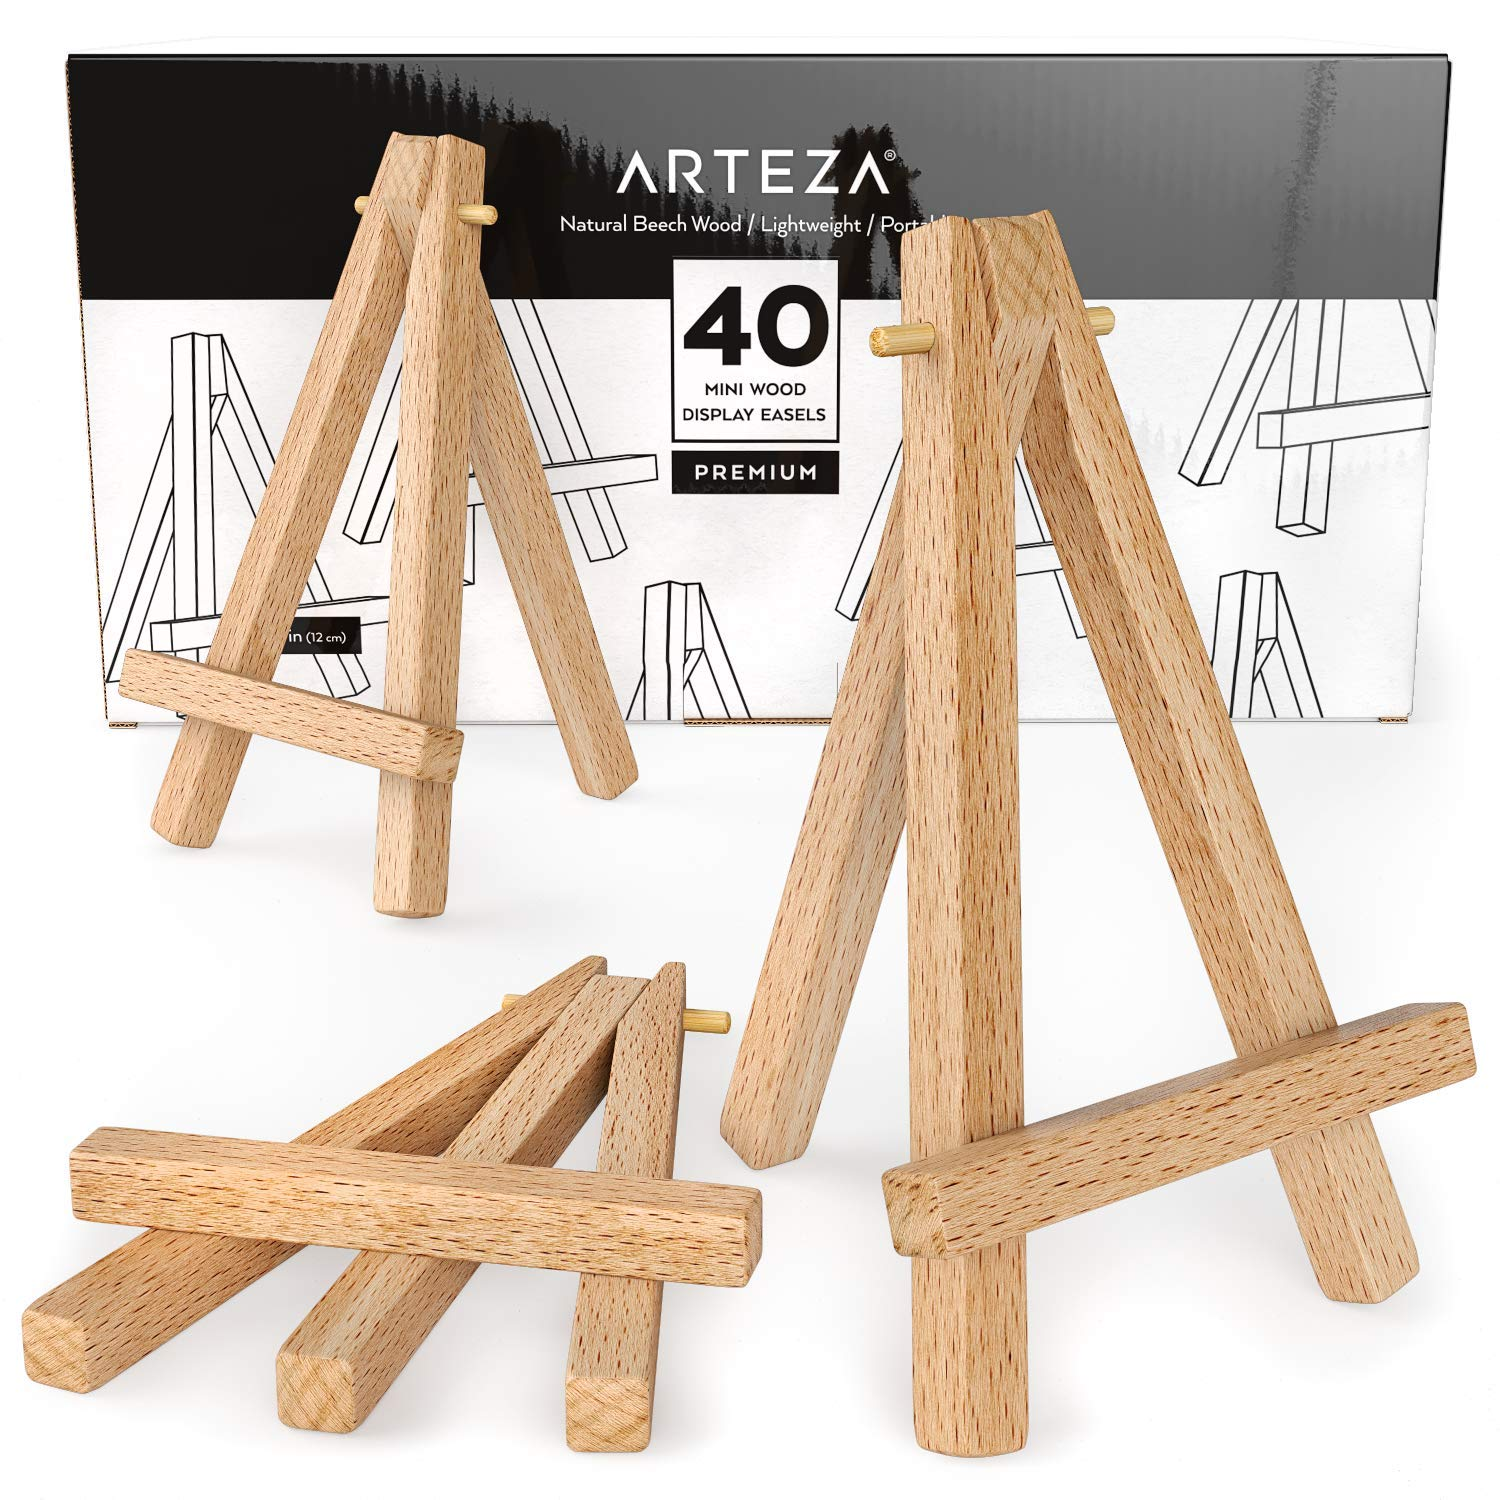 ARTEZA Mini Wood Display Easel, 5'', Pack of 40, Ideal for Displaying Small Canvases, Business Cards, Photos